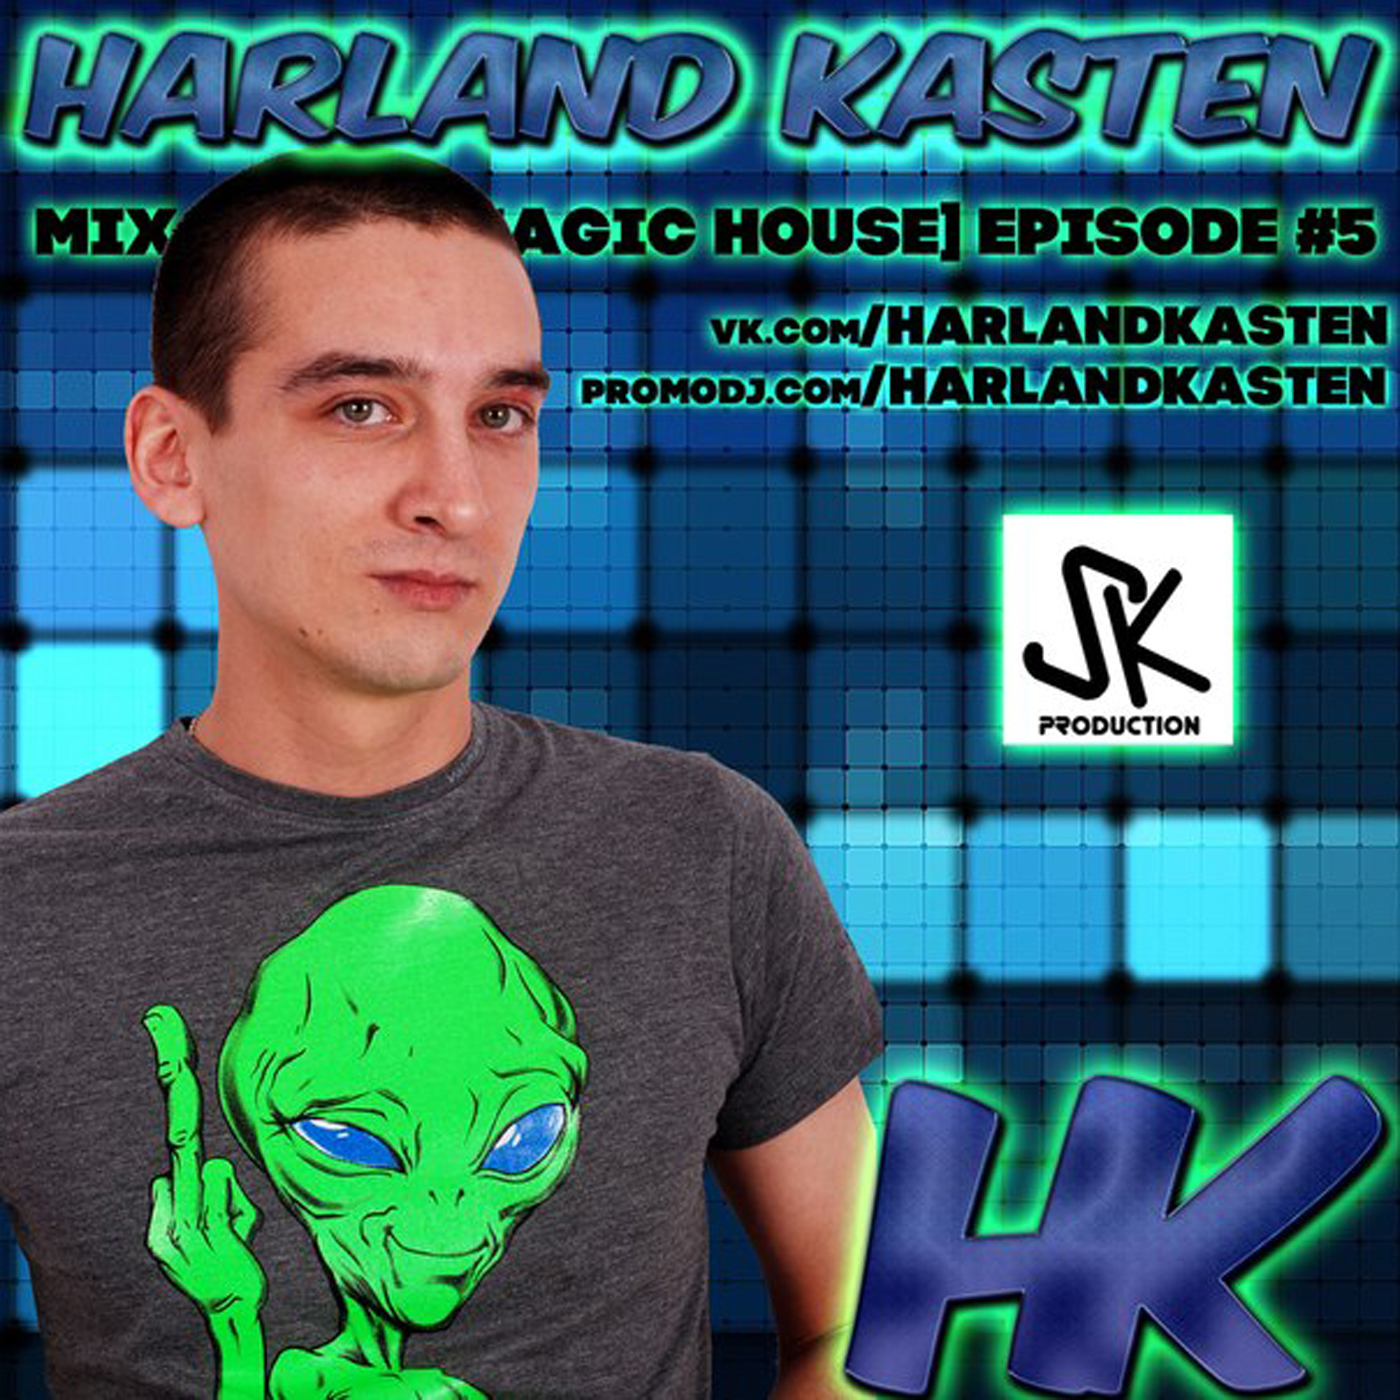 Harland Kasten - Mix Show [Magic House] Episode #5